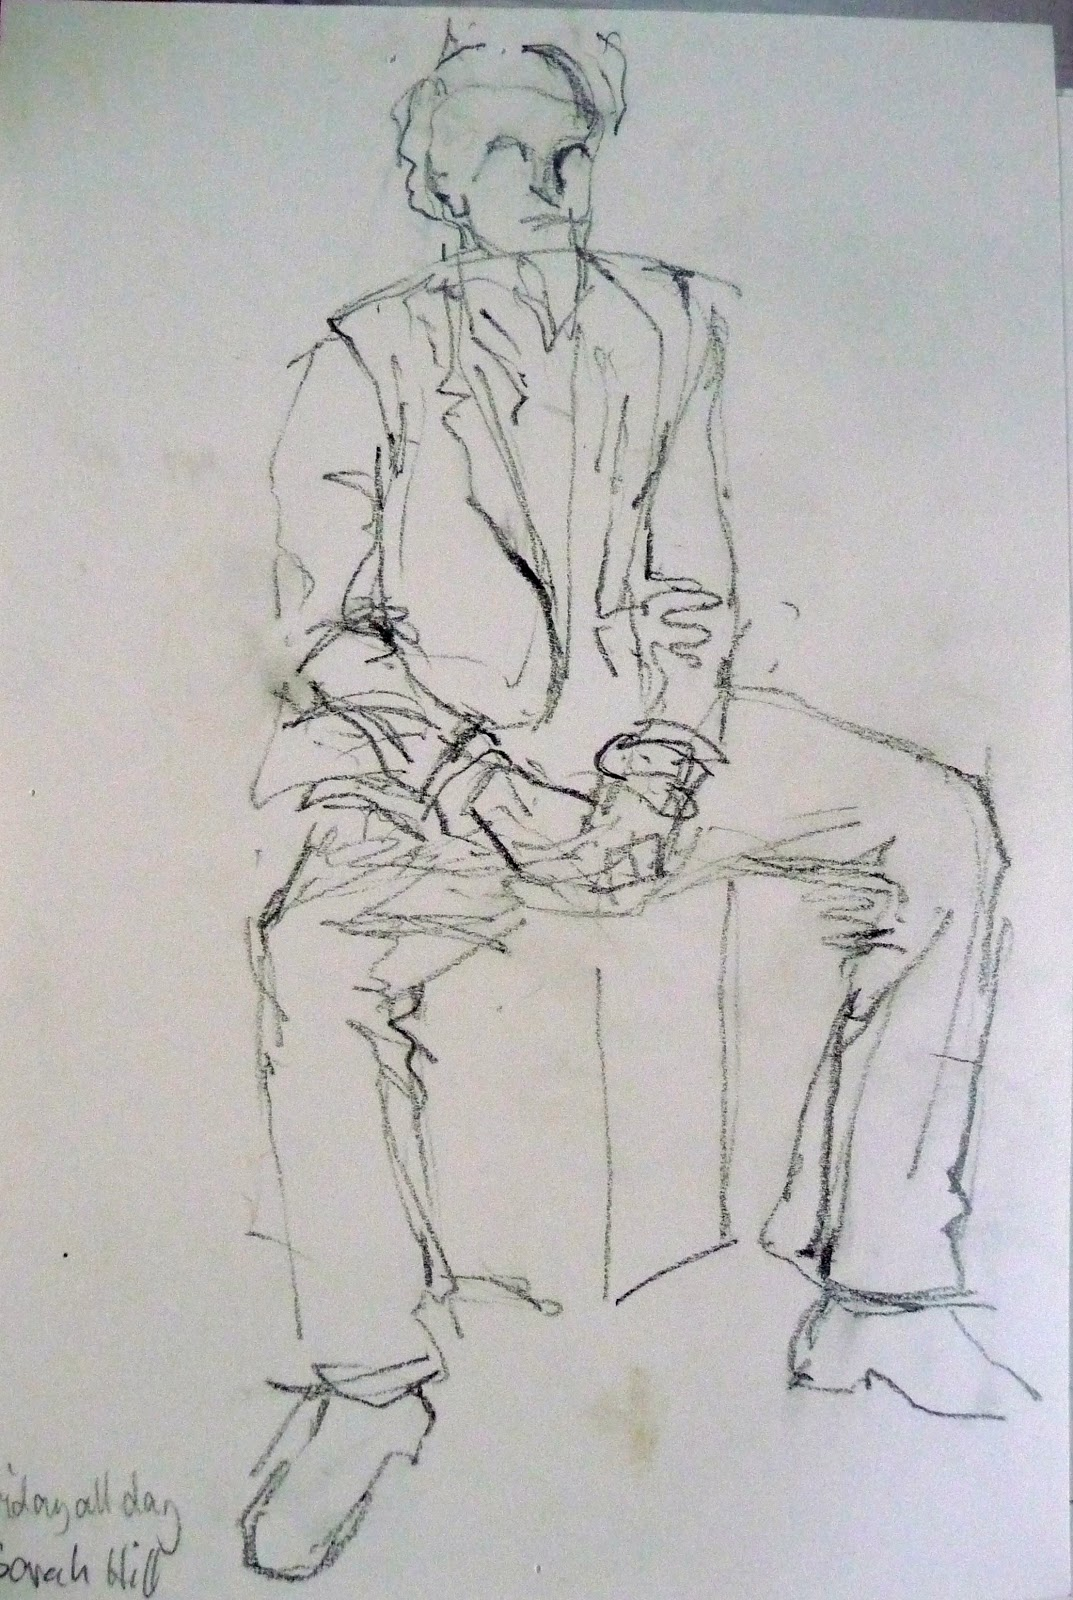 Sarah Hill U0026 39 S Art   Figure Drawing At Leith